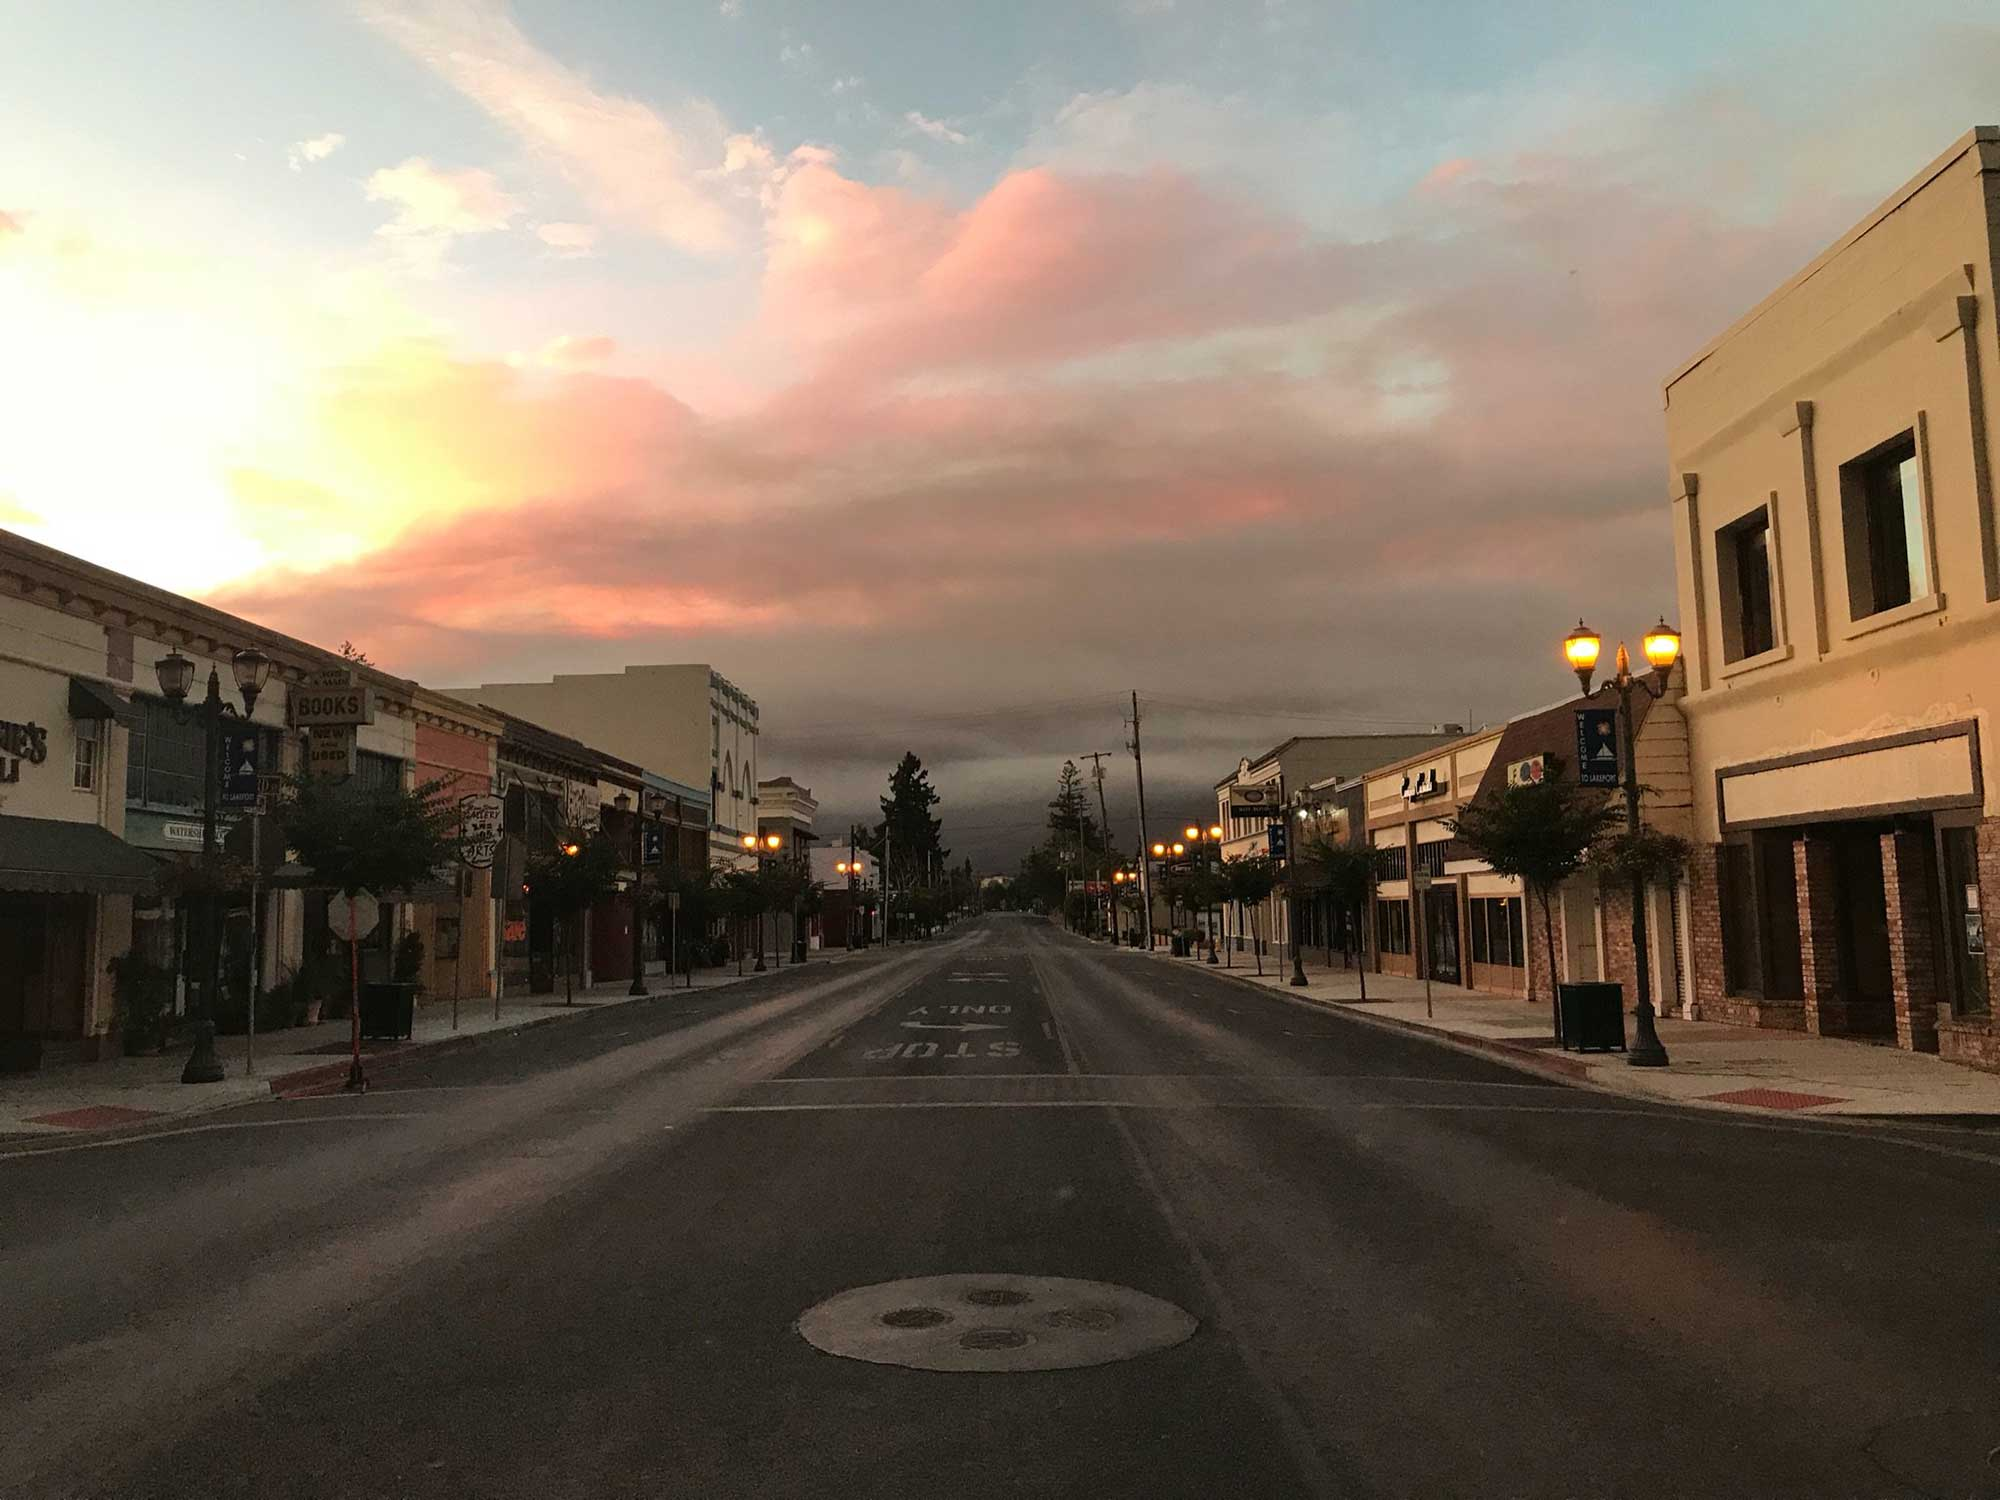 <div class='meta'><div class='origin-logo' data-origin='none'></div><span class='caption-text' data-credit='CityofLakeport/Twitter'>The City of Lakeport posted this photo on Sunday, writing, ''It's an eerie scene in downtown #Lakeport. #RiverFire #MandatoryEvacuation''</span></div>